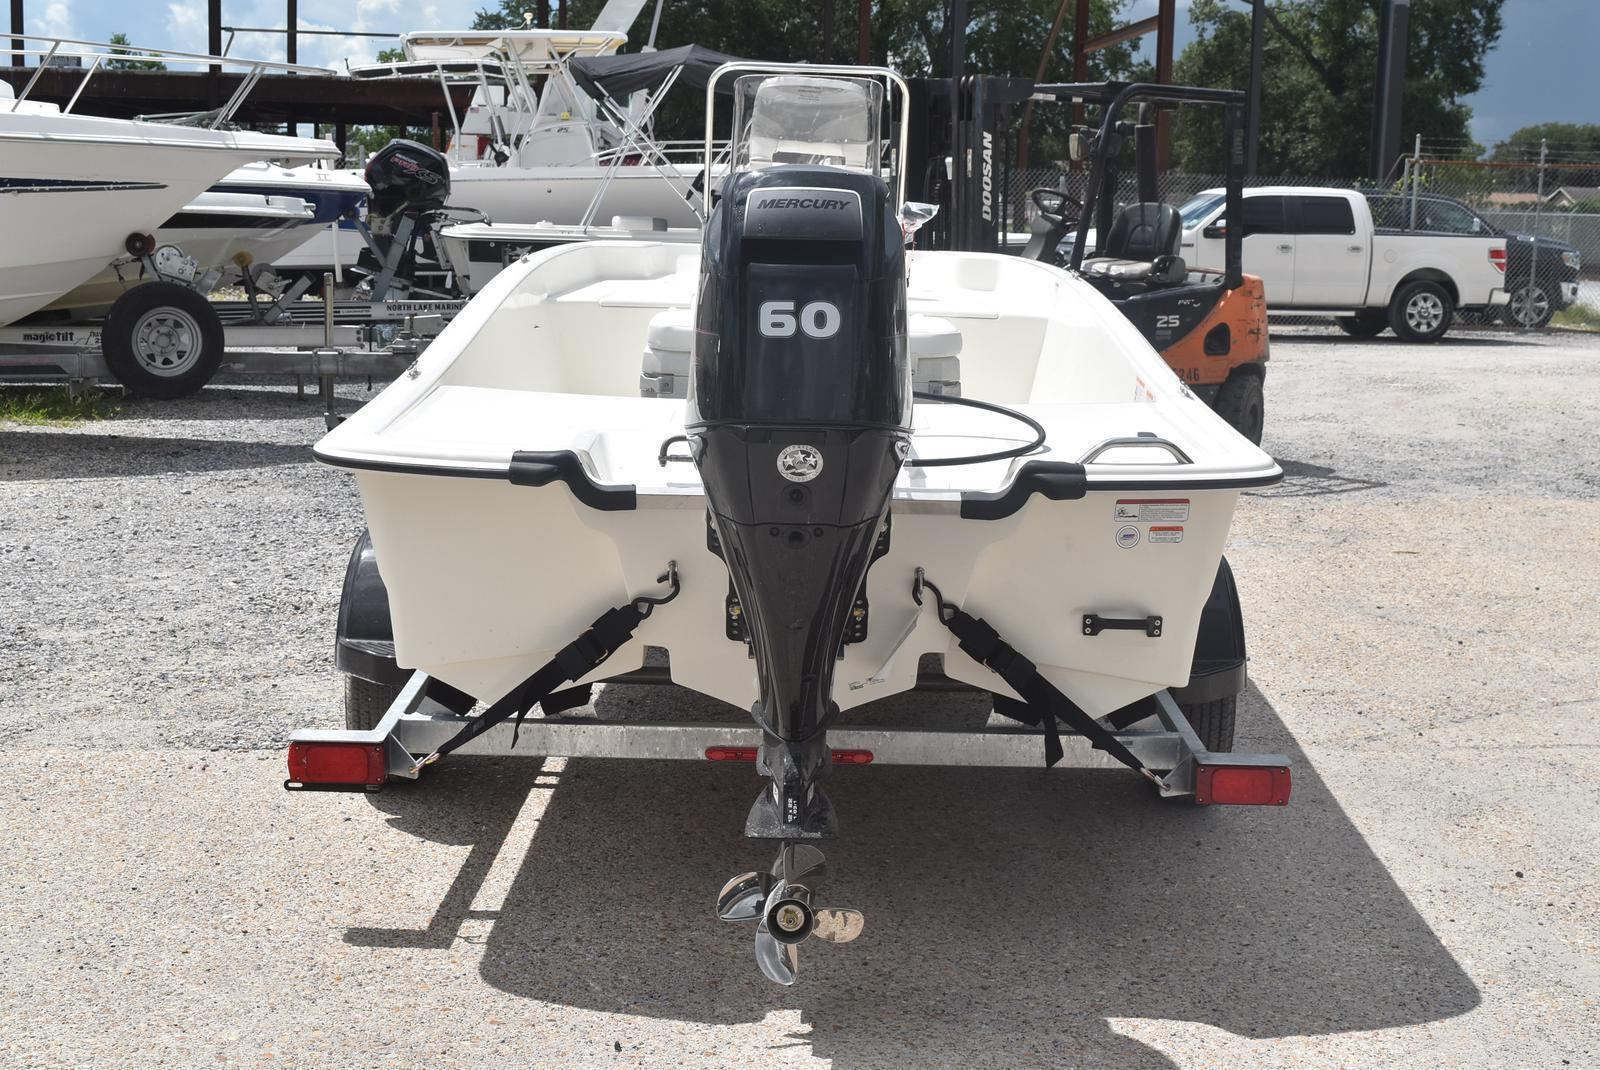 2020 Mako boat for sale, model of the boat is Pro Skiff 17, 75 ELPT & Image # 560 of 702